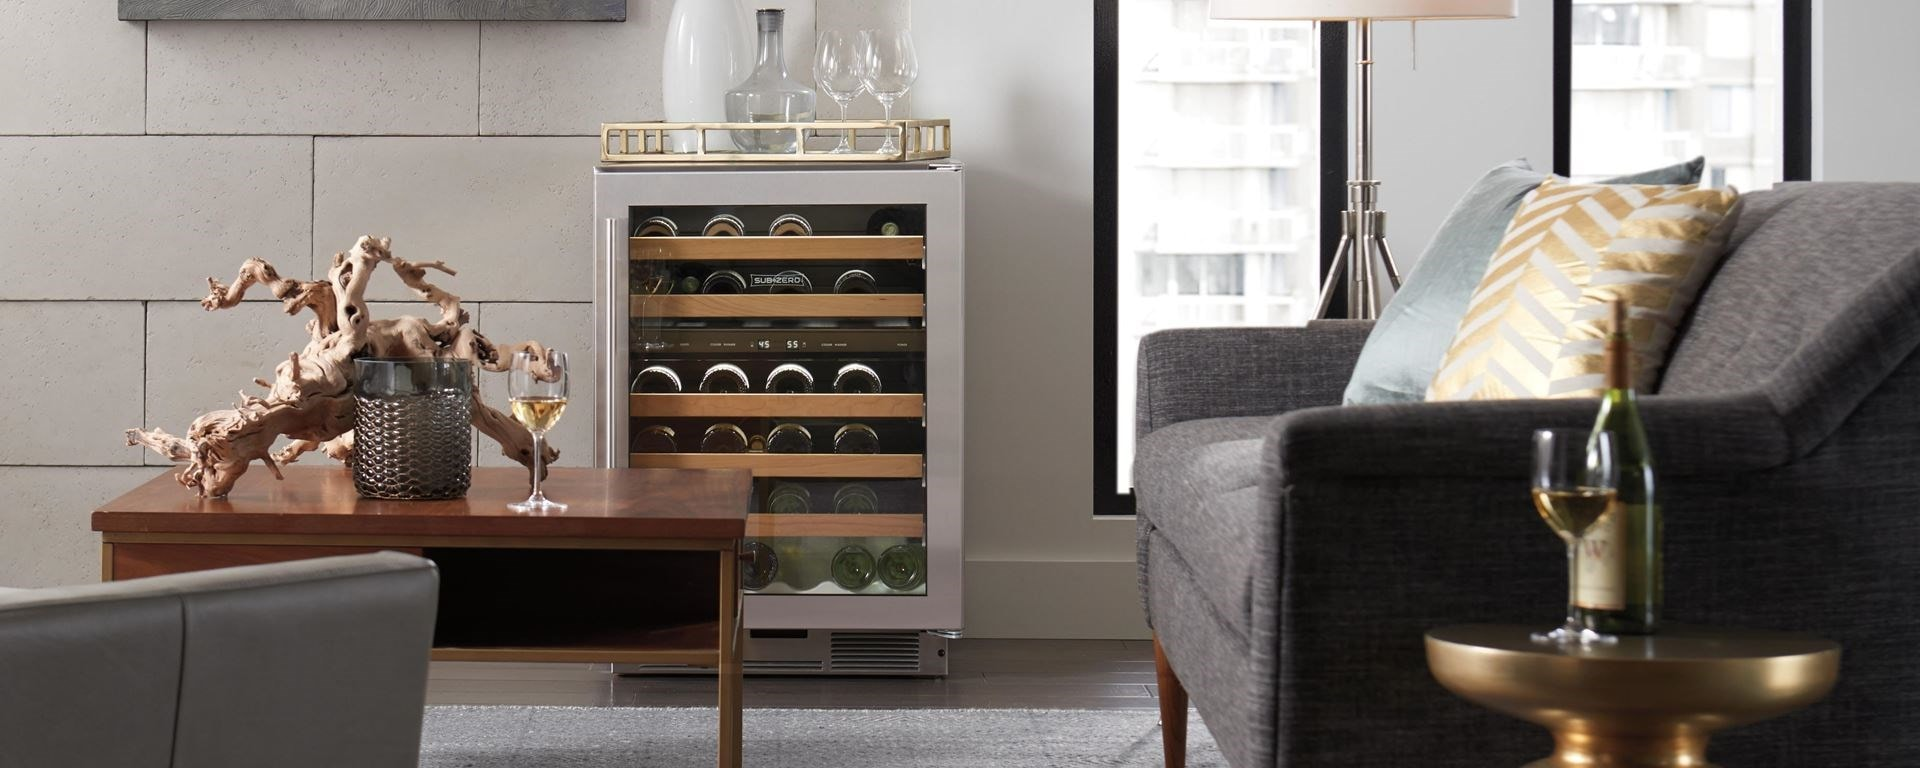 Sub-Zero free standing, stainless steel, glass door wine fridge